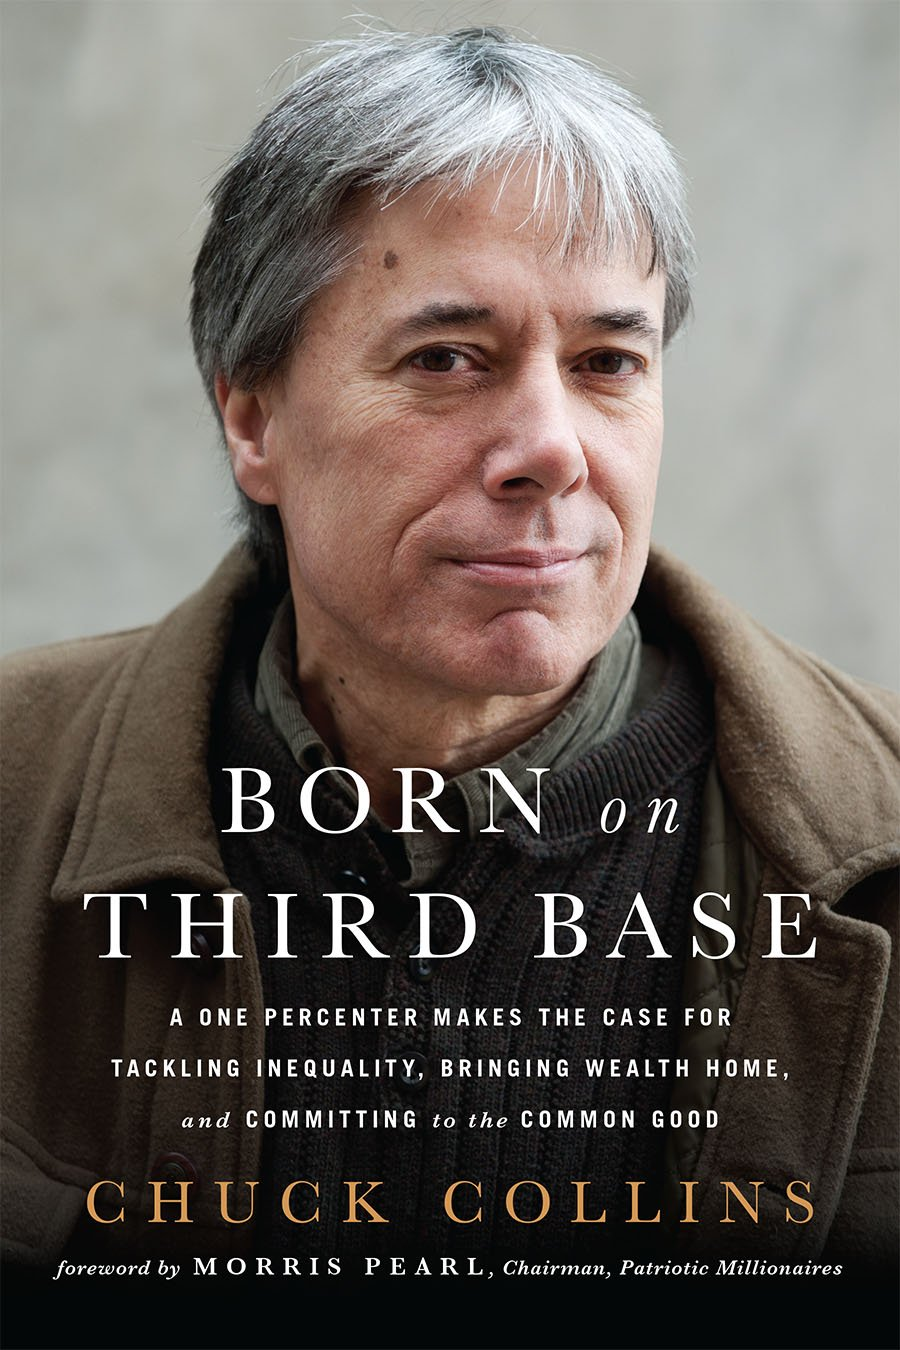 Born on Third Base: A One Percenter Makes the Case for Tackling Inequality, Bringing Wealth Home, and Committing to the Common Good